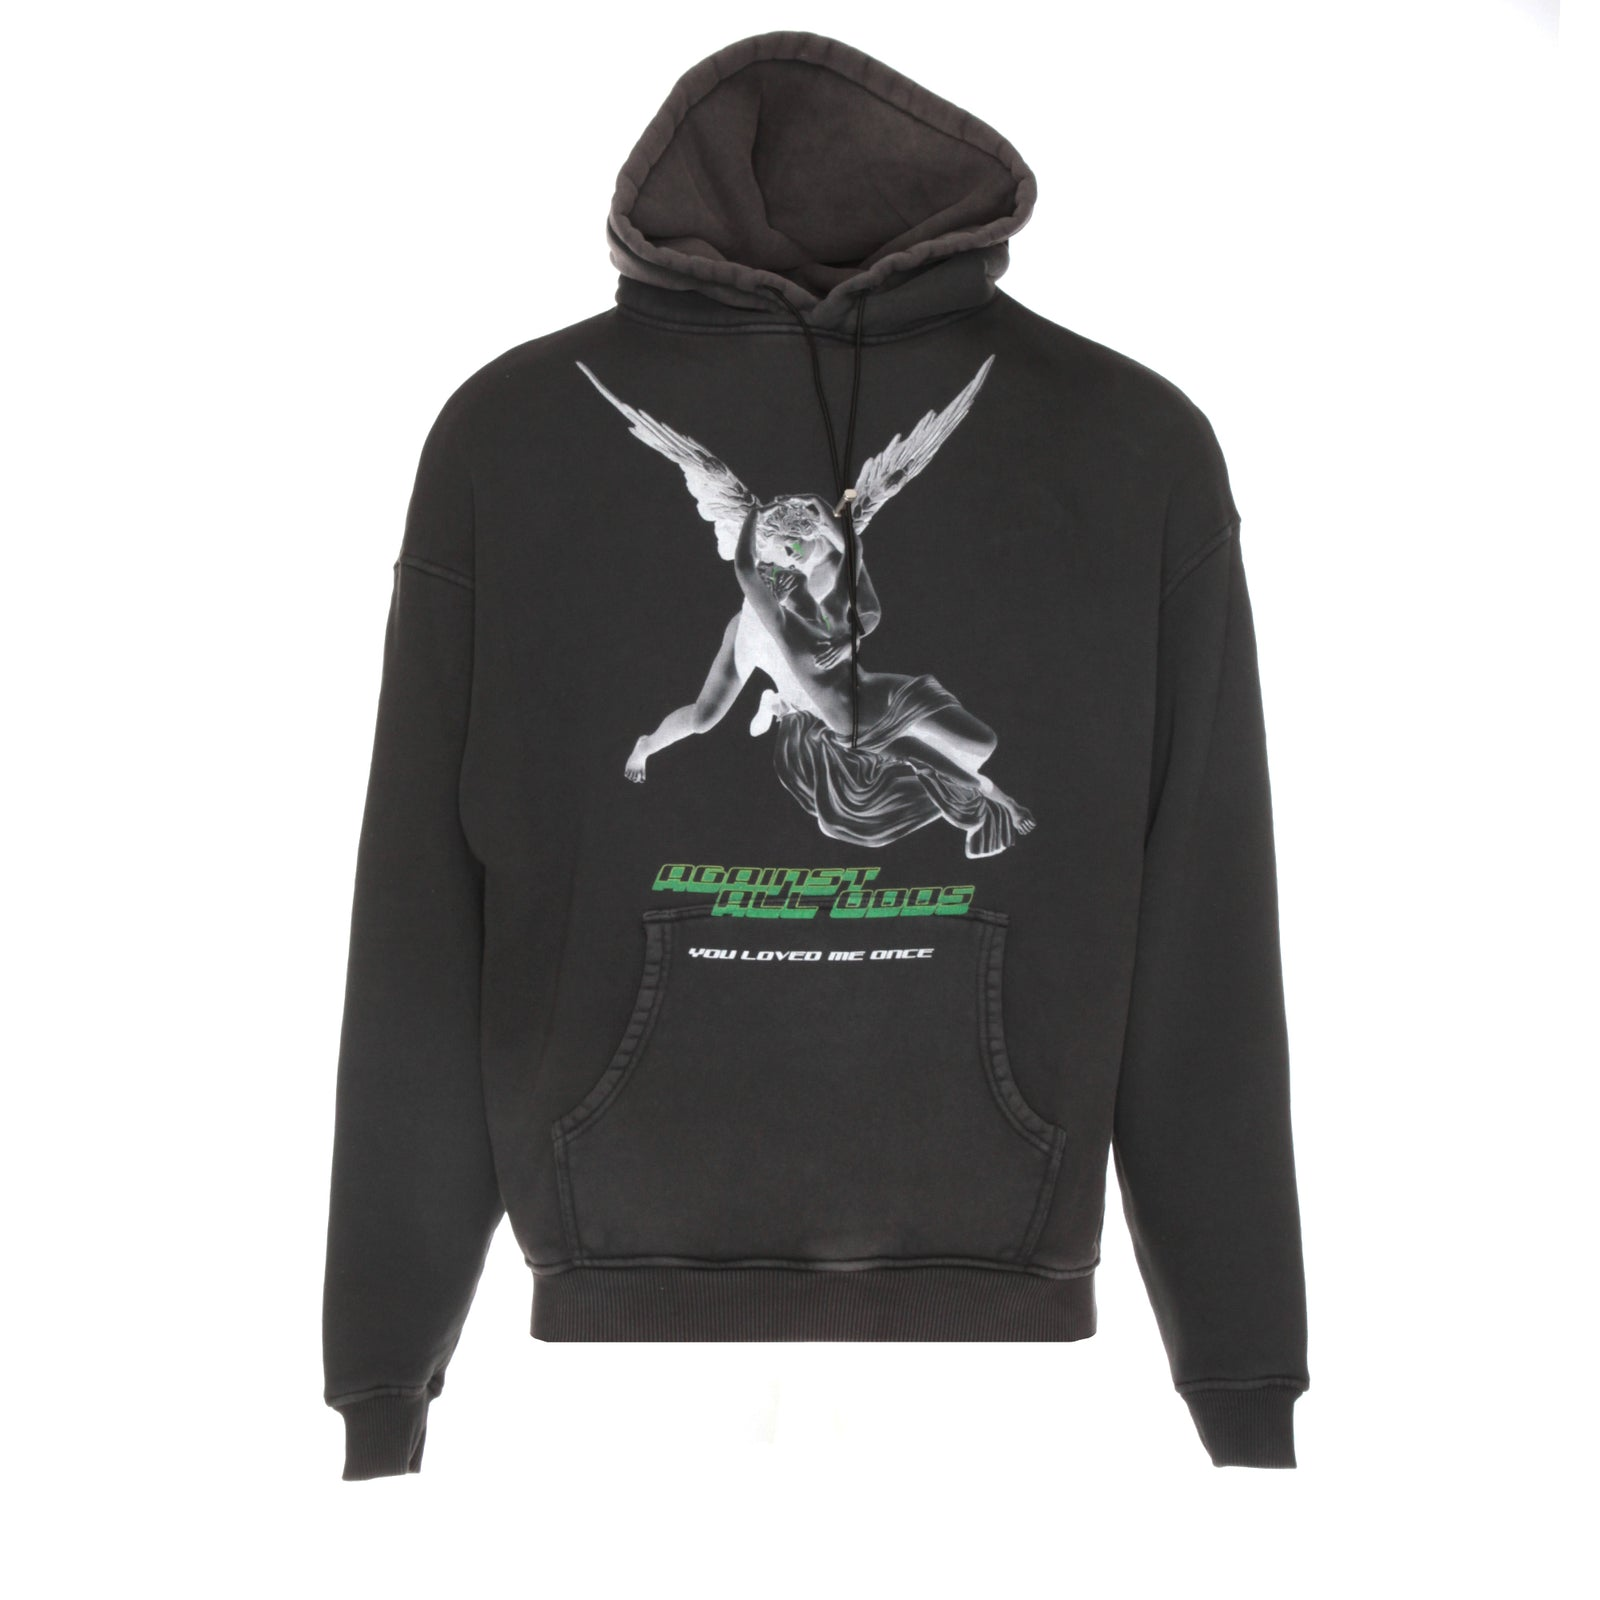 Represent Against All Odds Hoodie